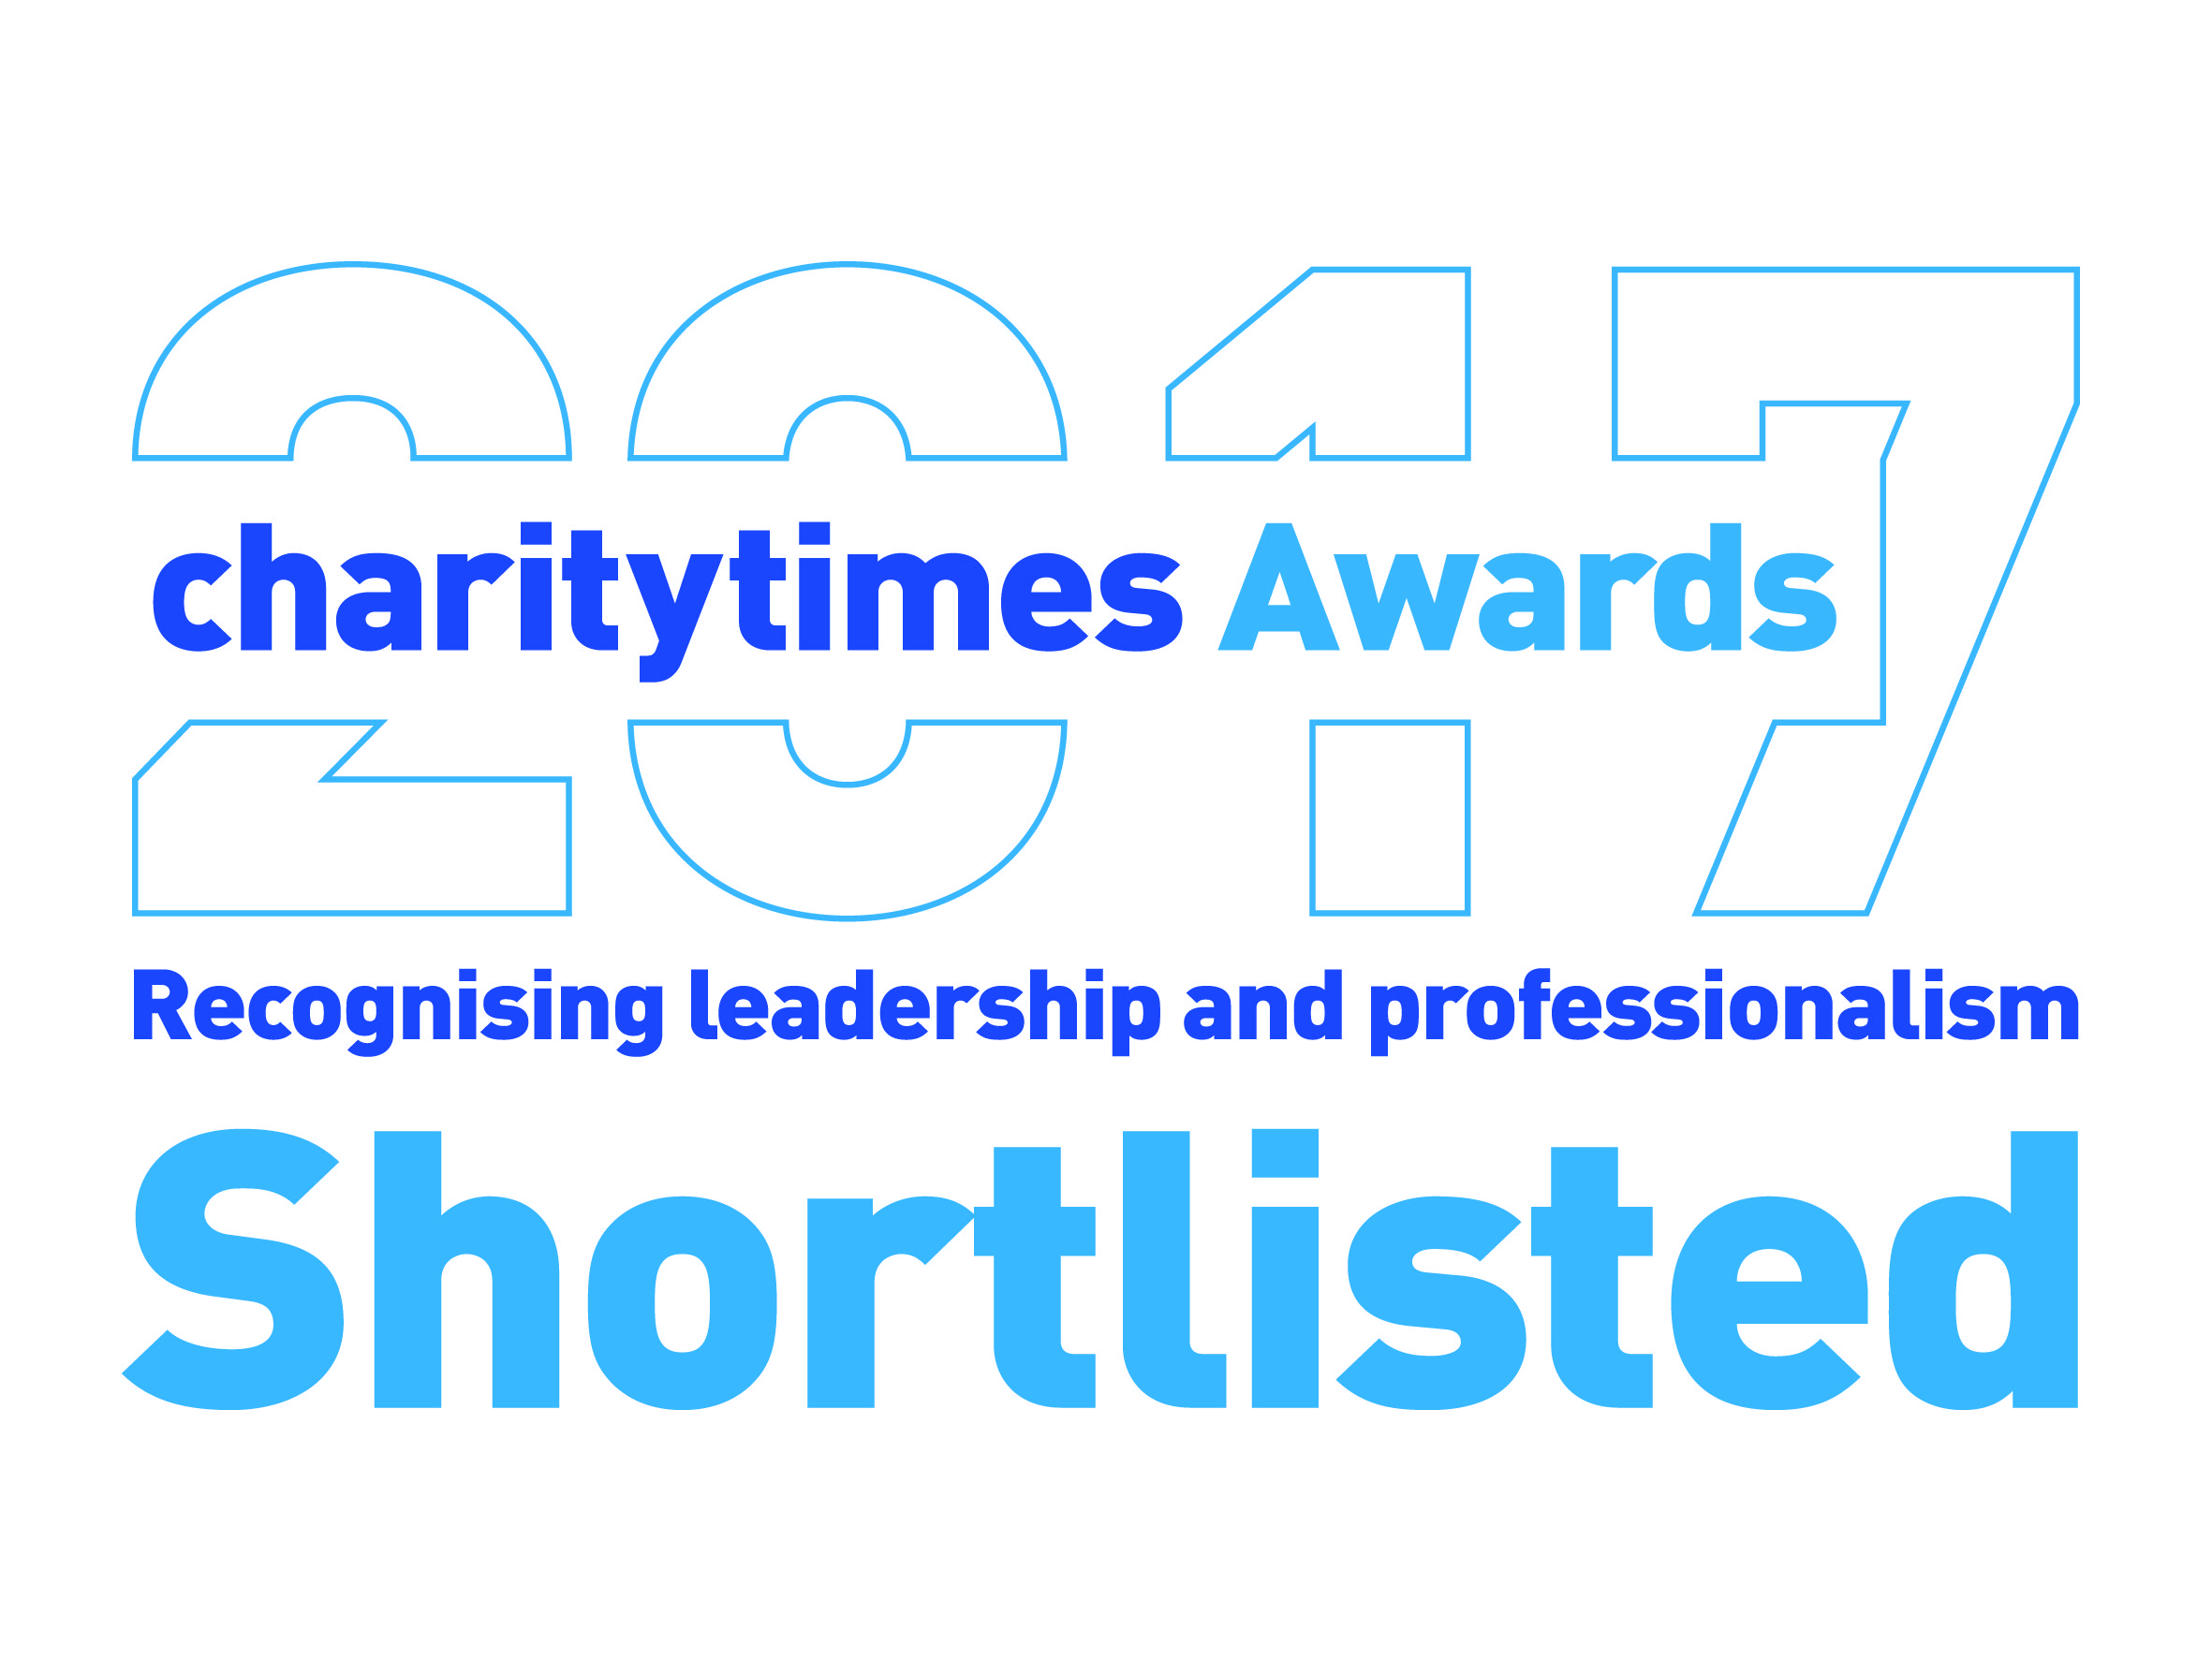 Charity Times Awards 2017 shortlisted